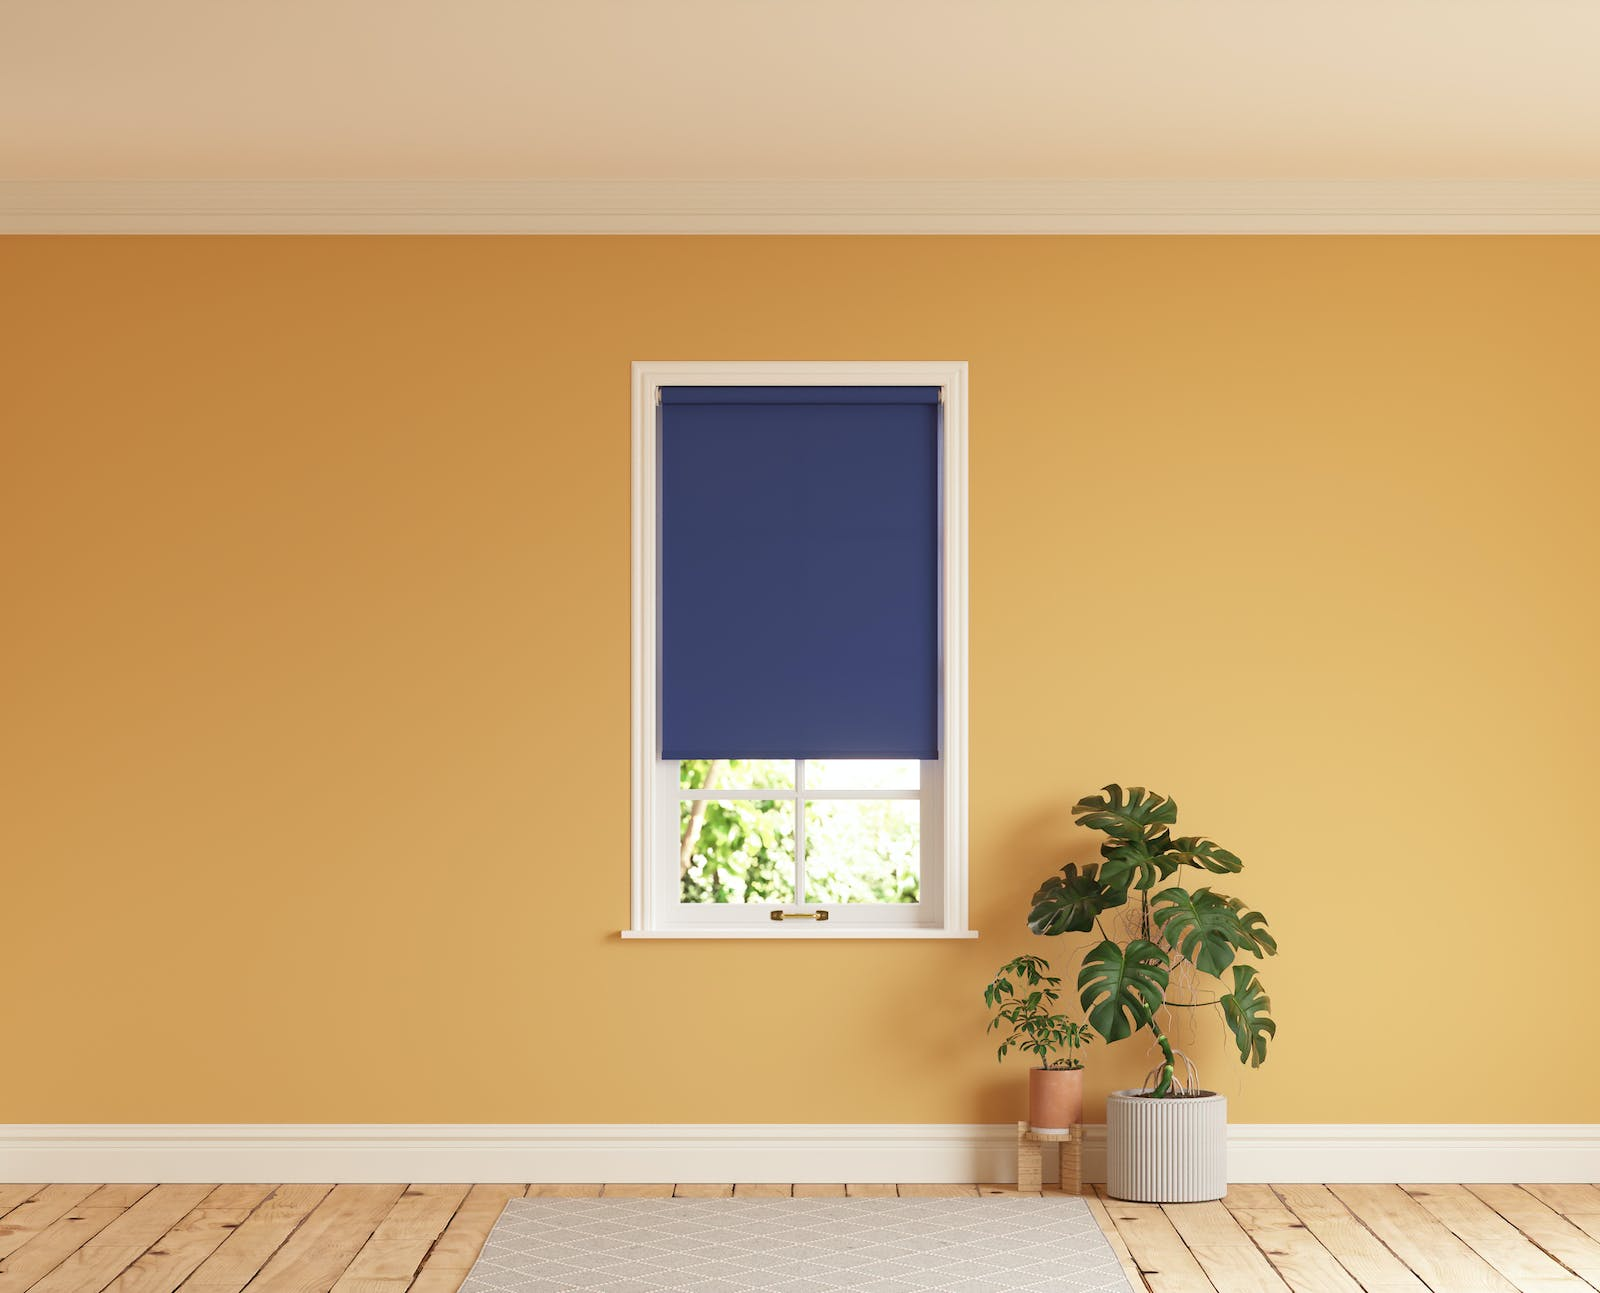 Room with walls painted in Lick Yellow 02 and Blue 08 roller blinds